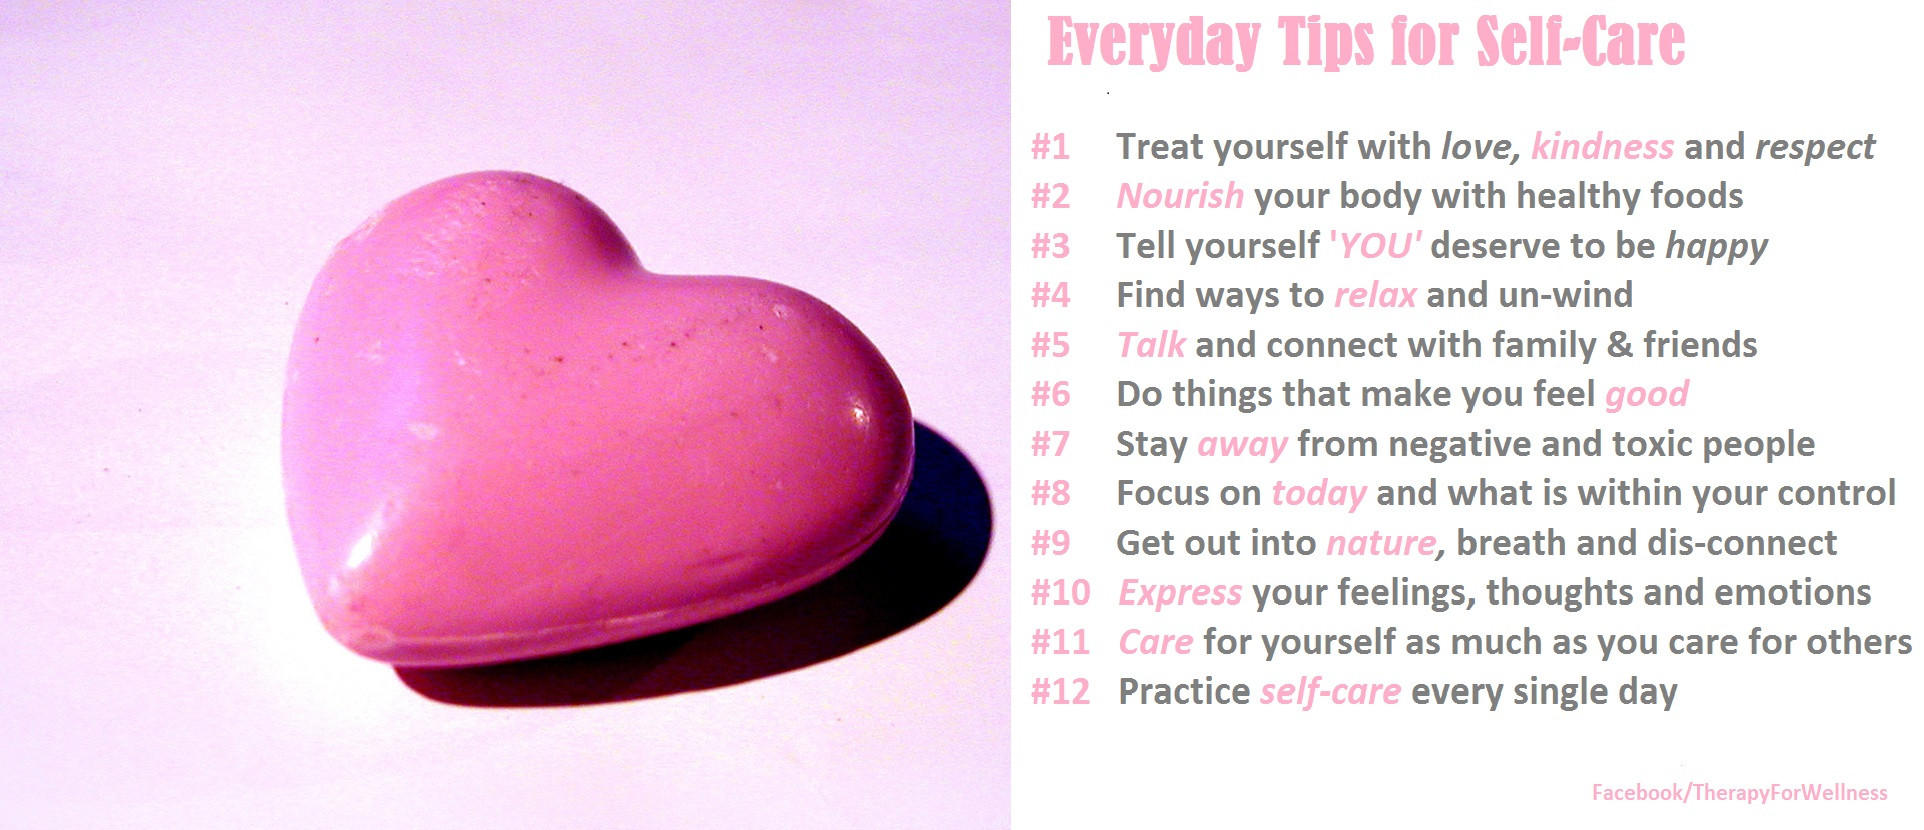 Everyday tips for self-care